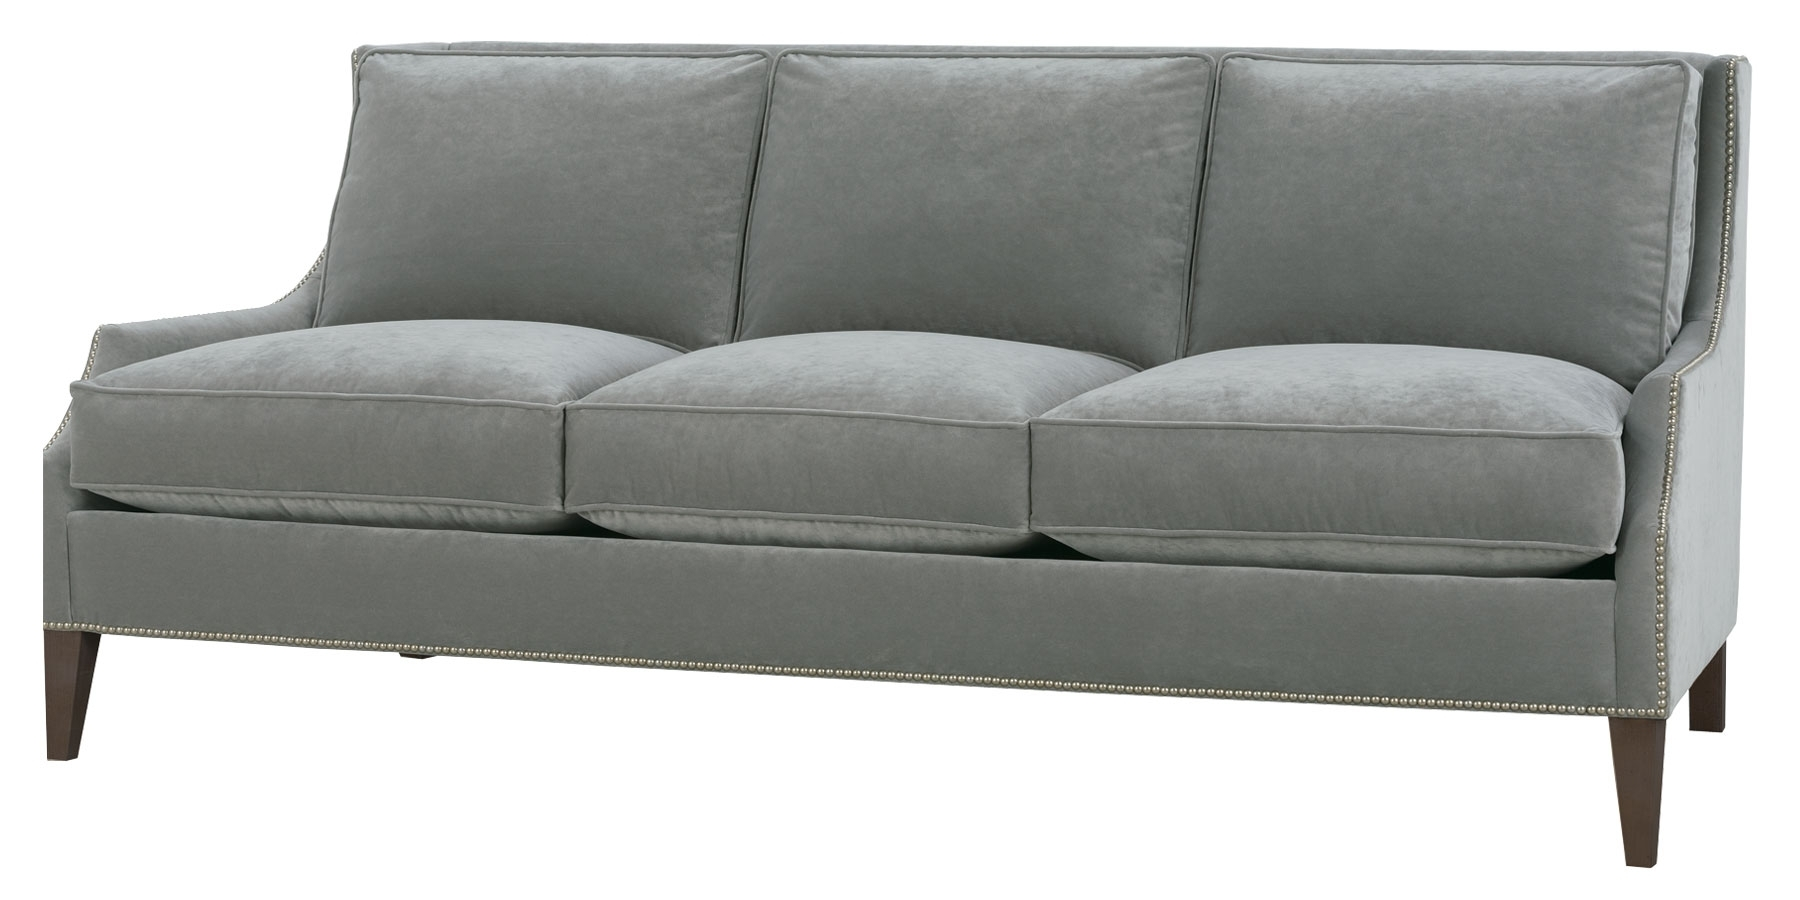 Apartment Size Couch – Home Designs Ideas Online – Tydrakedesign Intended For Latest Apartment Sofas (View 5 of 15)